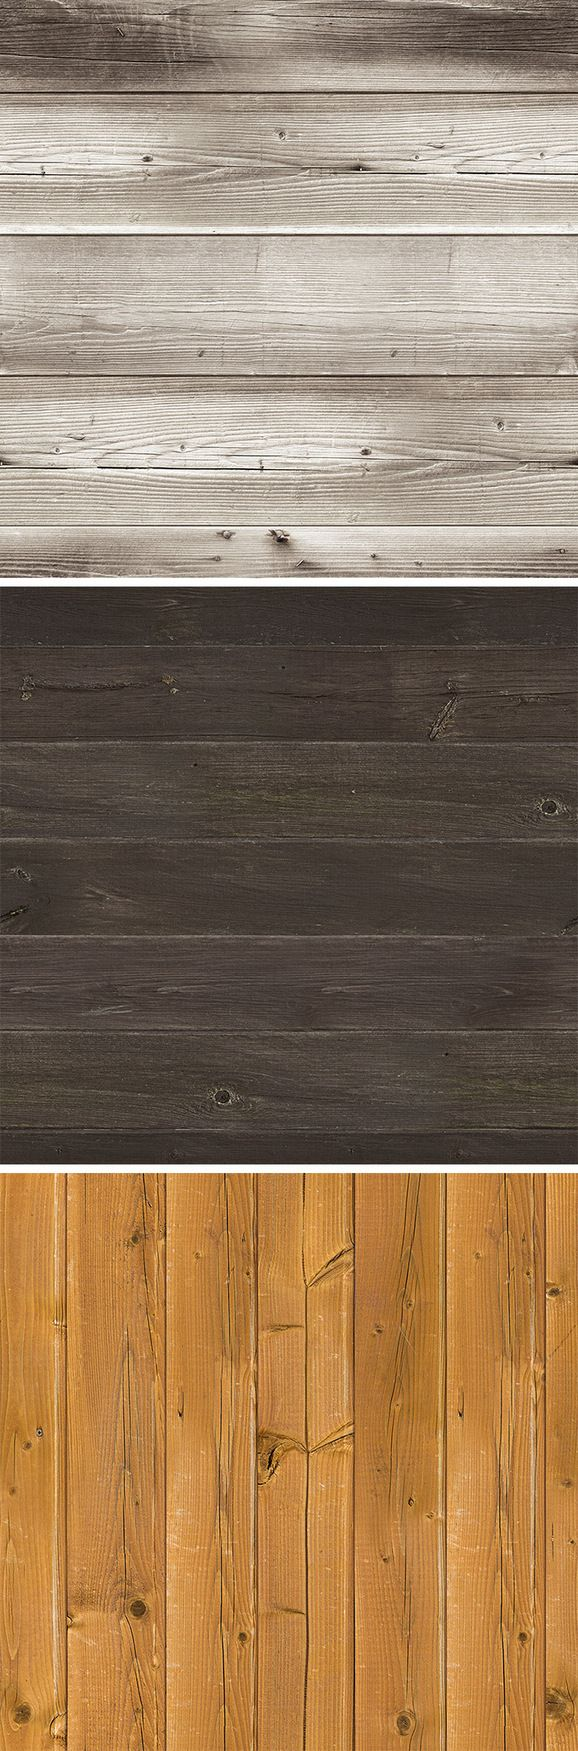 best 25 texture bois ideas on pinterest parquet texture texture plancher en bois and texture sol. Black Bedroom Furniture Sets. Home Design Ideas